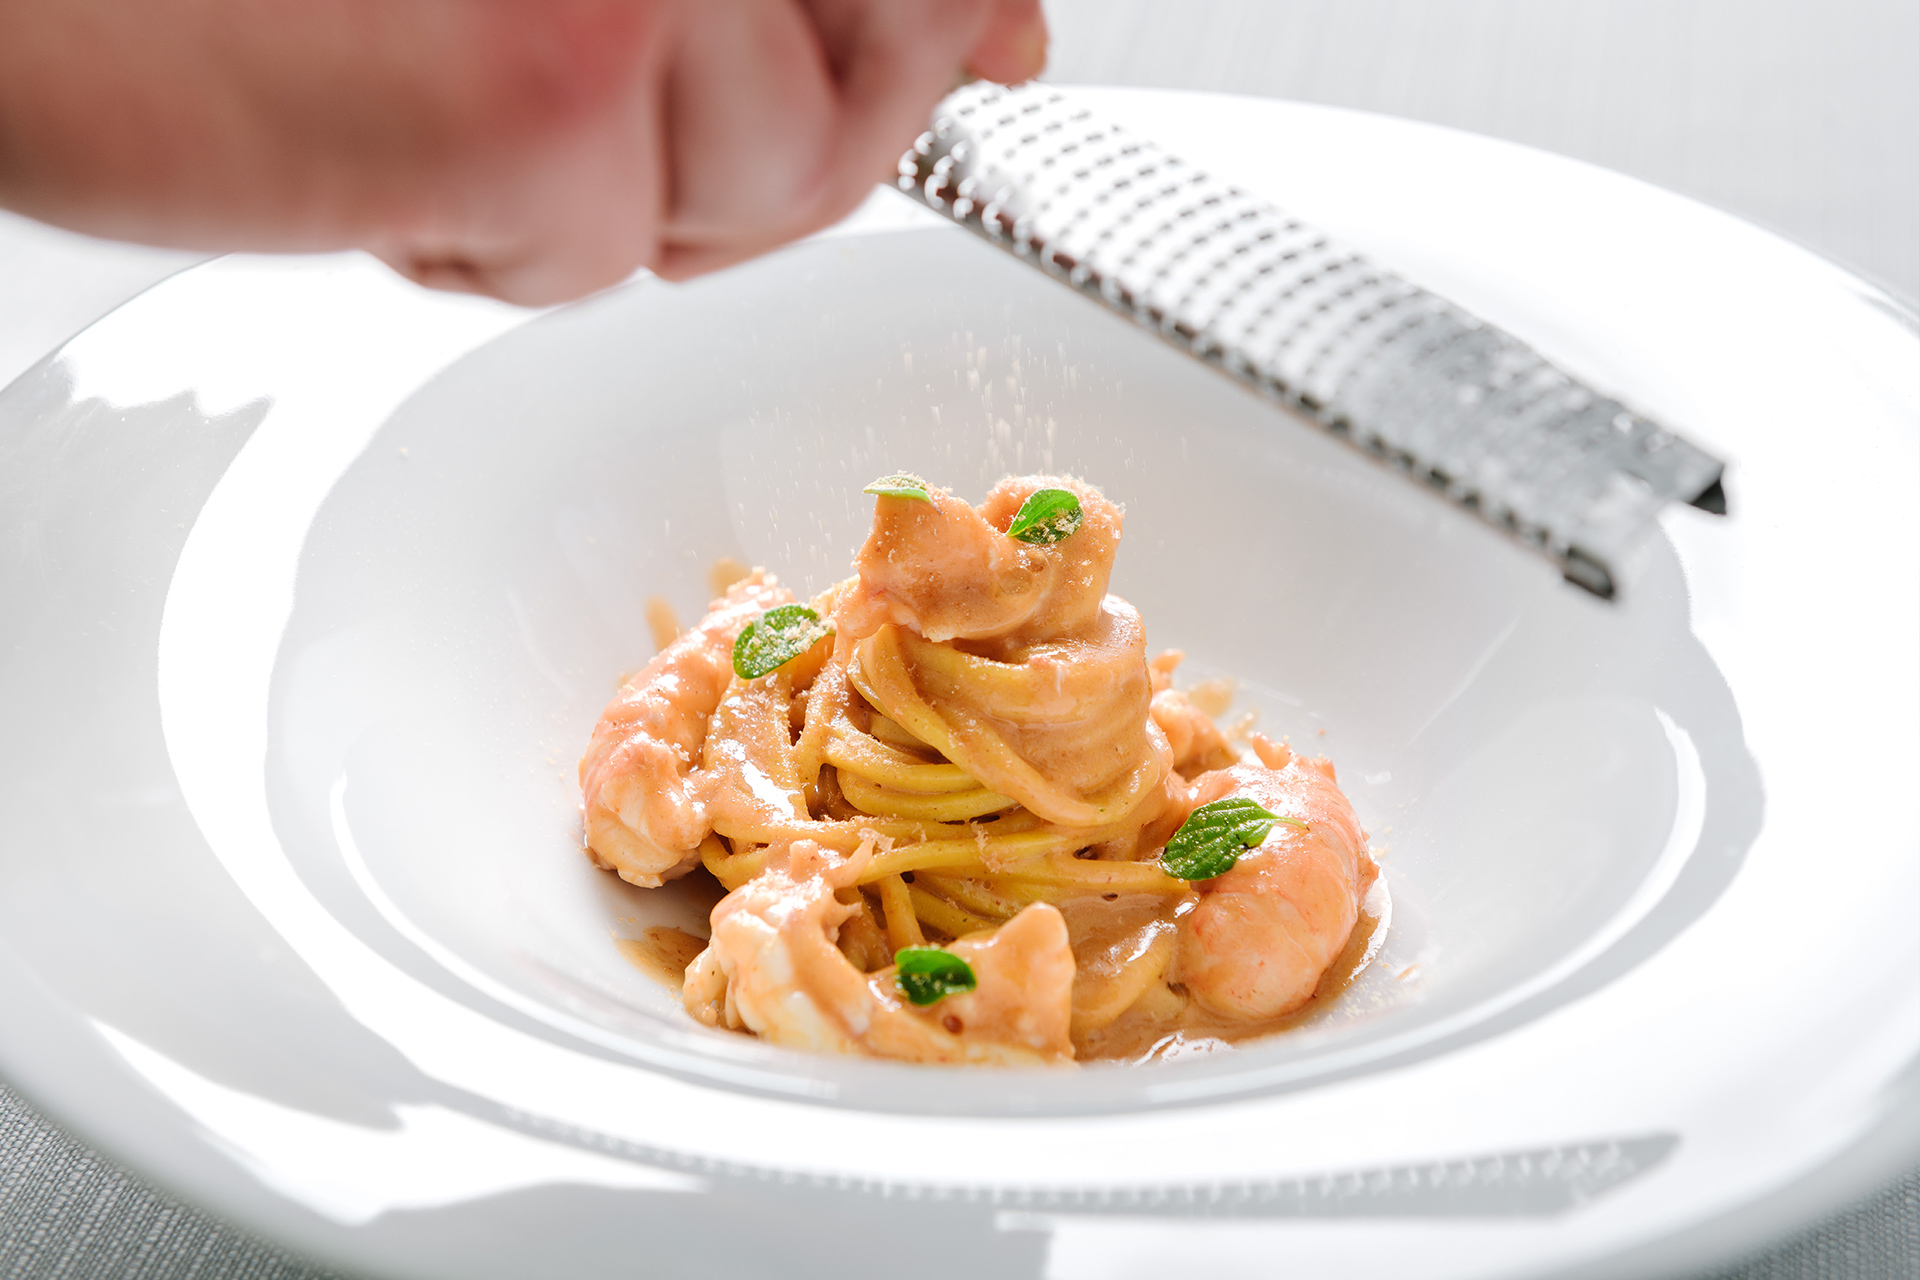 Spaghetti alla chitarra with prawns and bottarga at Una Finestra sul Lago